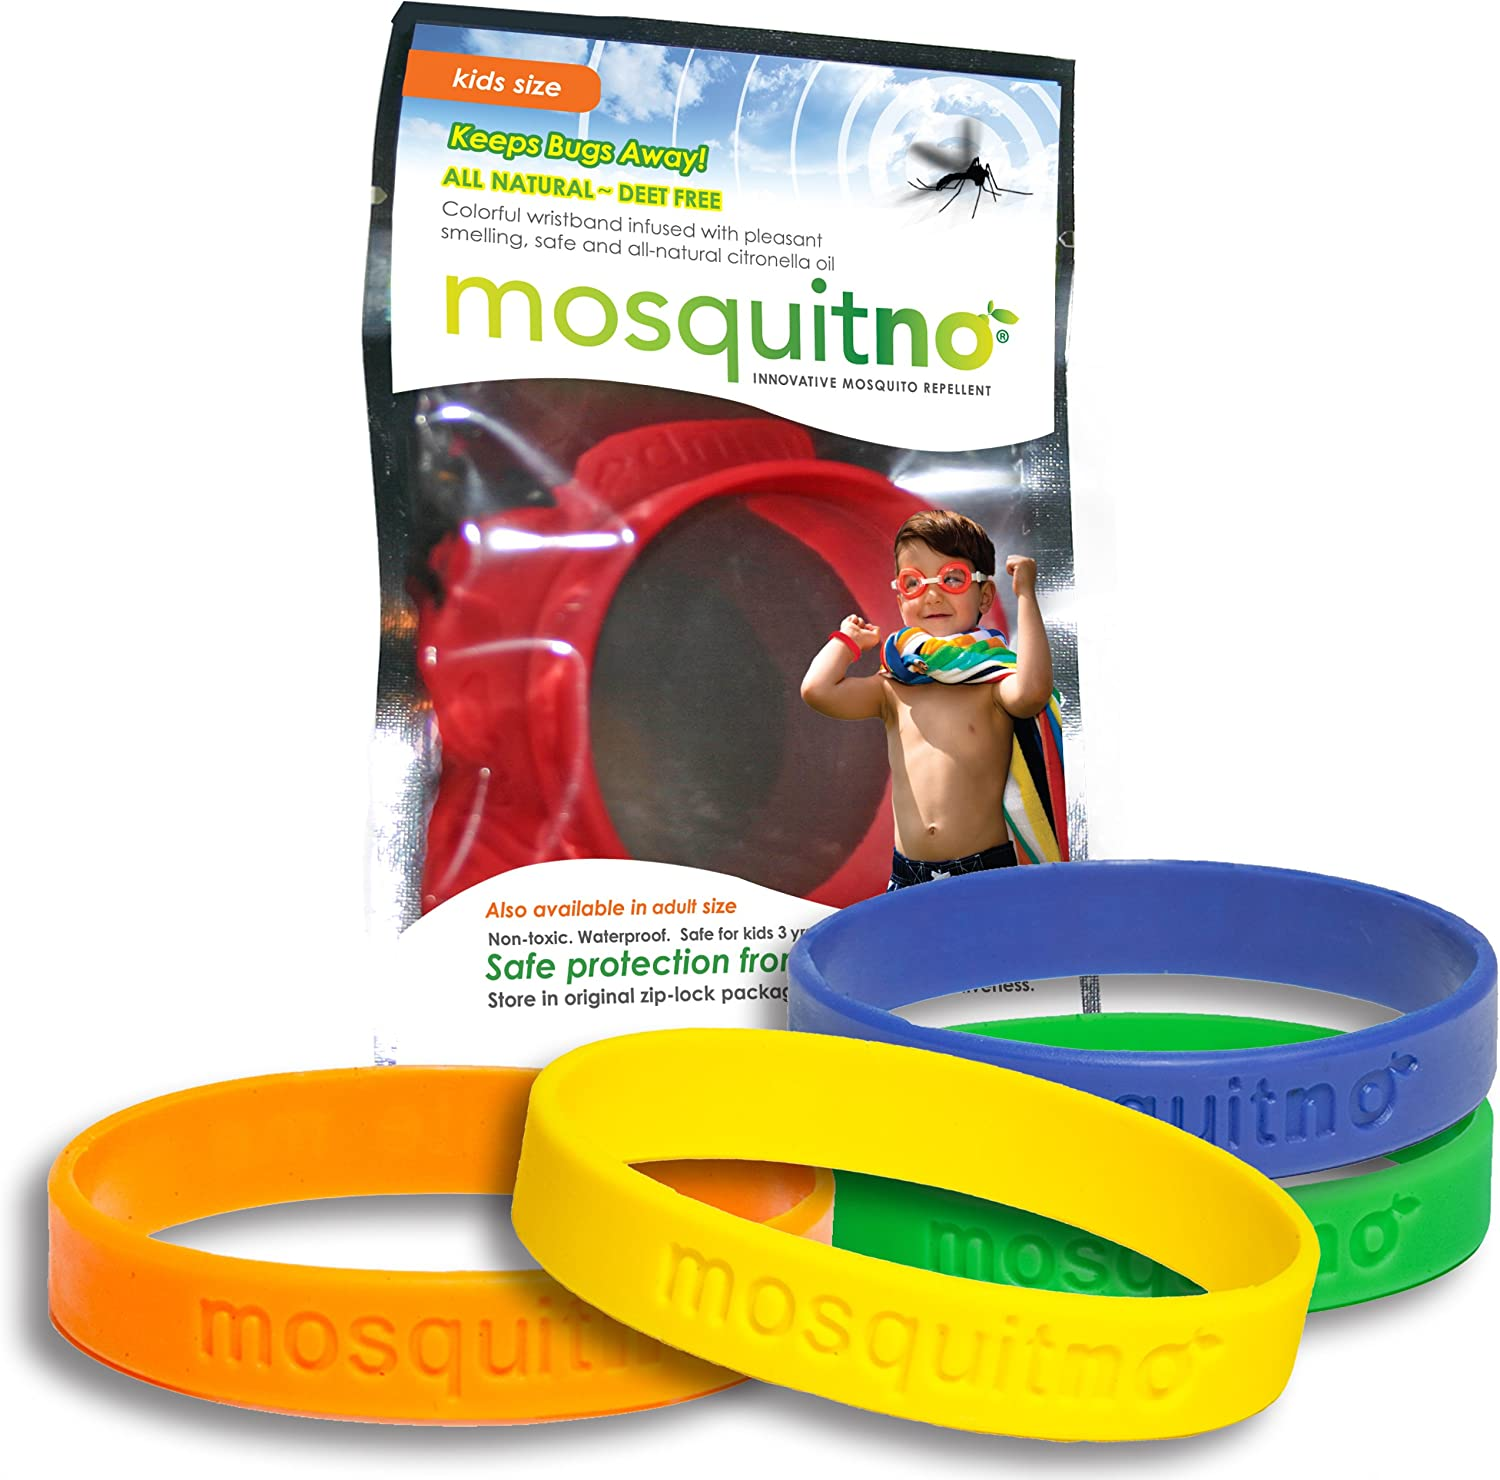 Mosquitno Natural, Citronella, Waterproof,Mosquito Repellent Wristbands, Kids, 5-Pack, Red/Orange/Green/Navy/Yellow